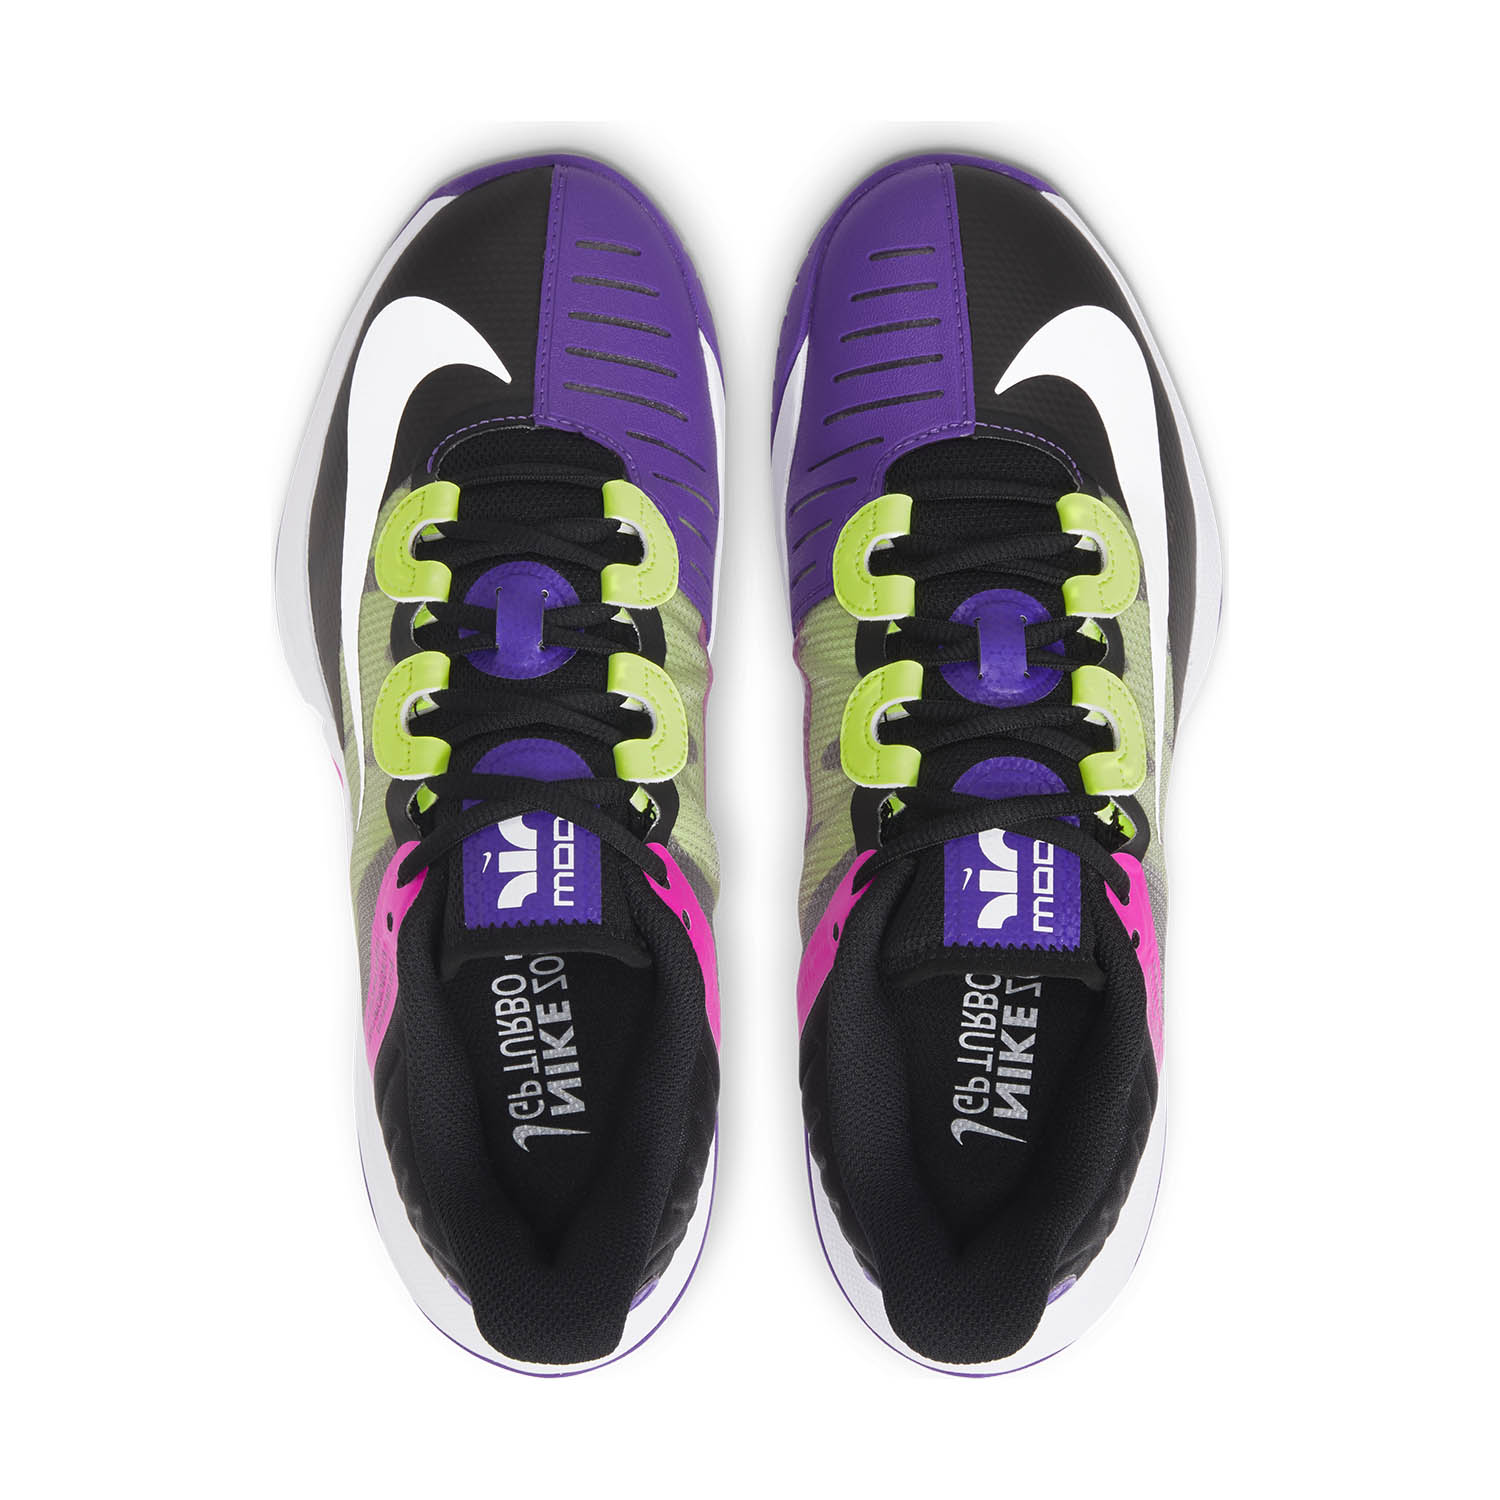 Nike Air Zoom GP Turbo HC - Black/White/Fierce Purple/Liquid Lime